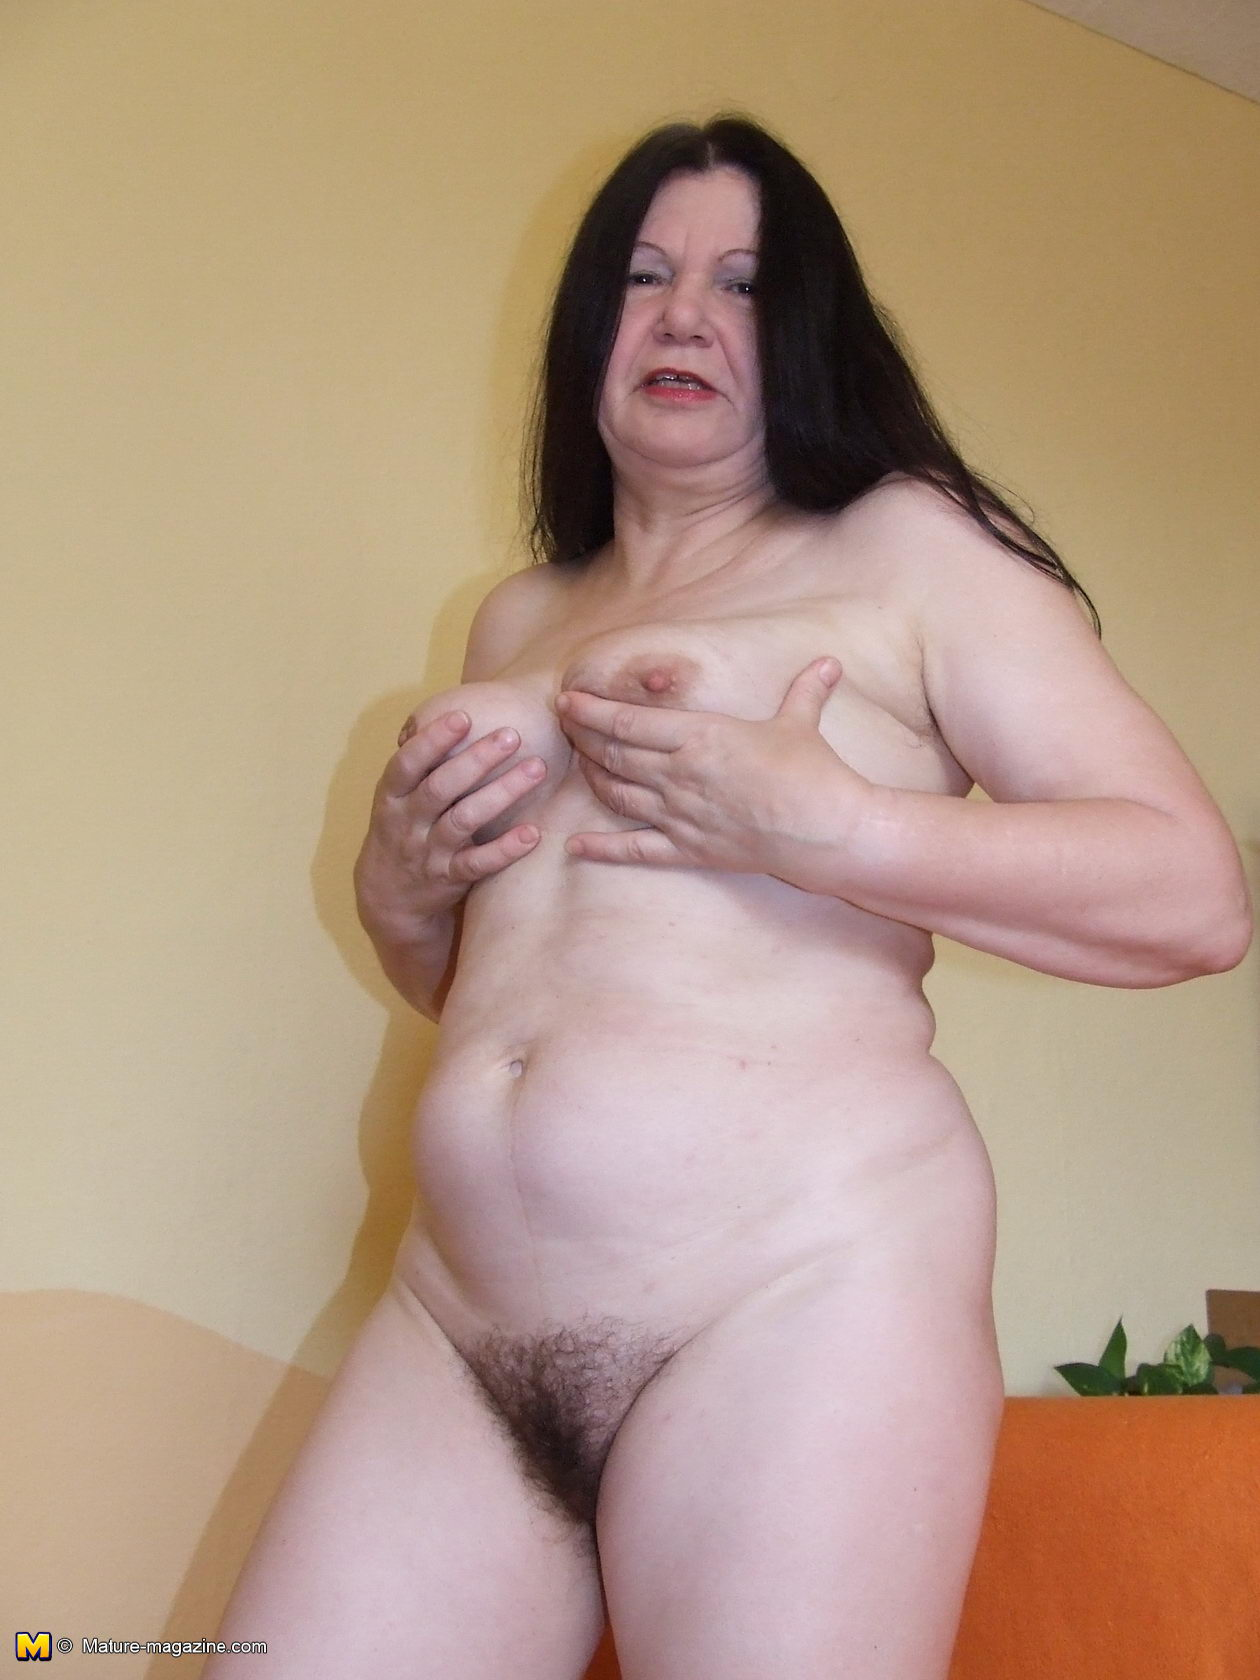 hairy mature slut getting ready for naughtyness - grannypornpics